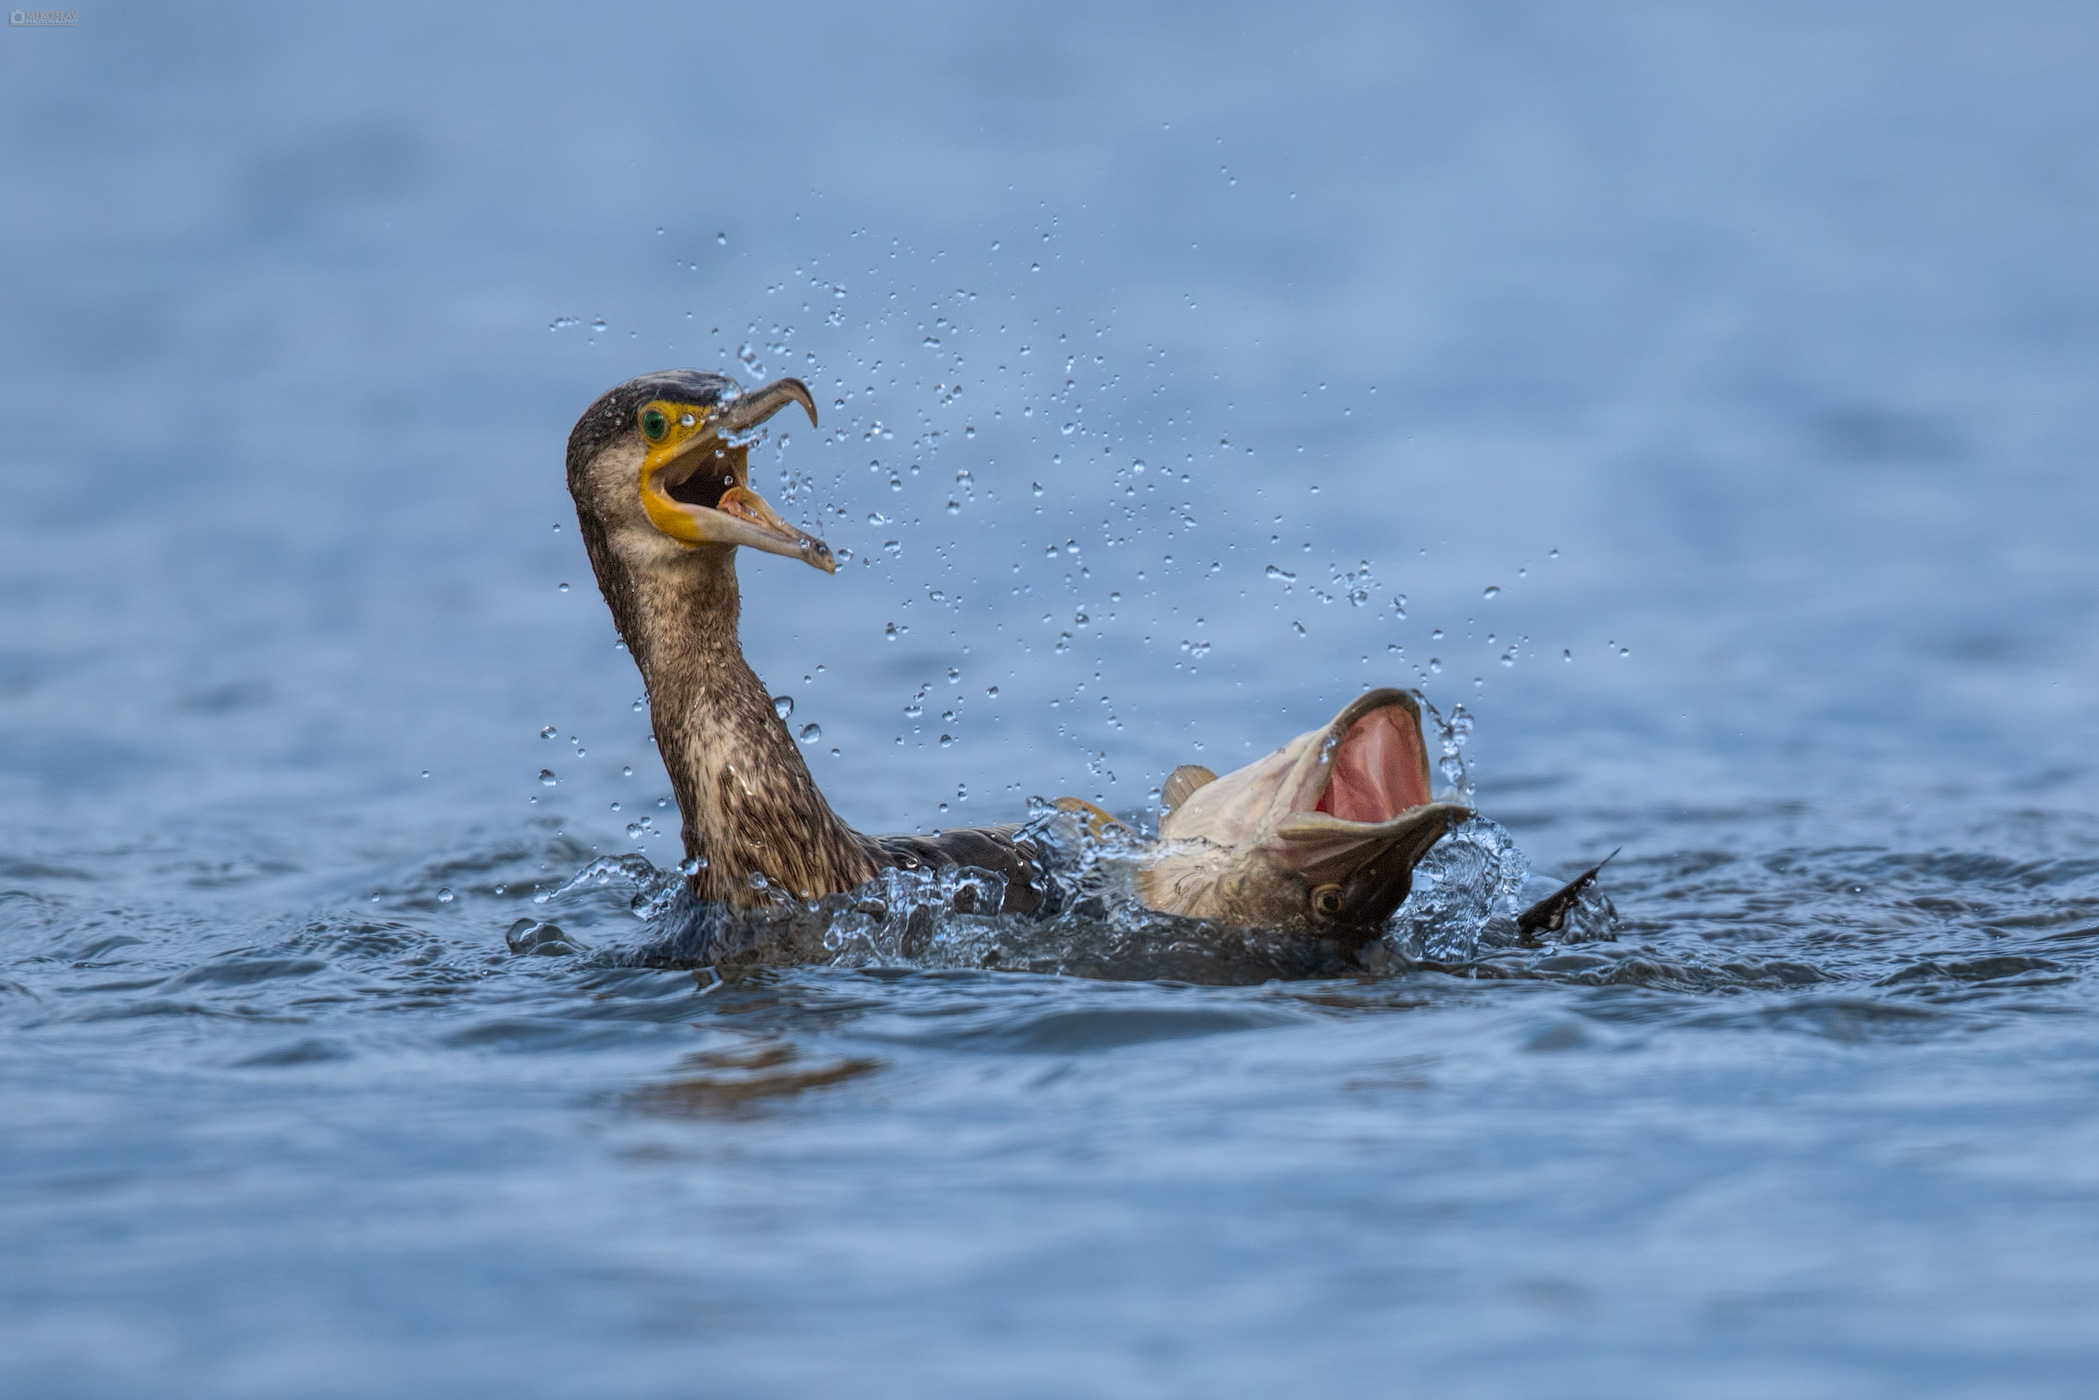 Great Cormorant (Phalacrocorax carbo) and Northern pike (Esox lucius) in fight. Veliki vranac se bori sa štukom.